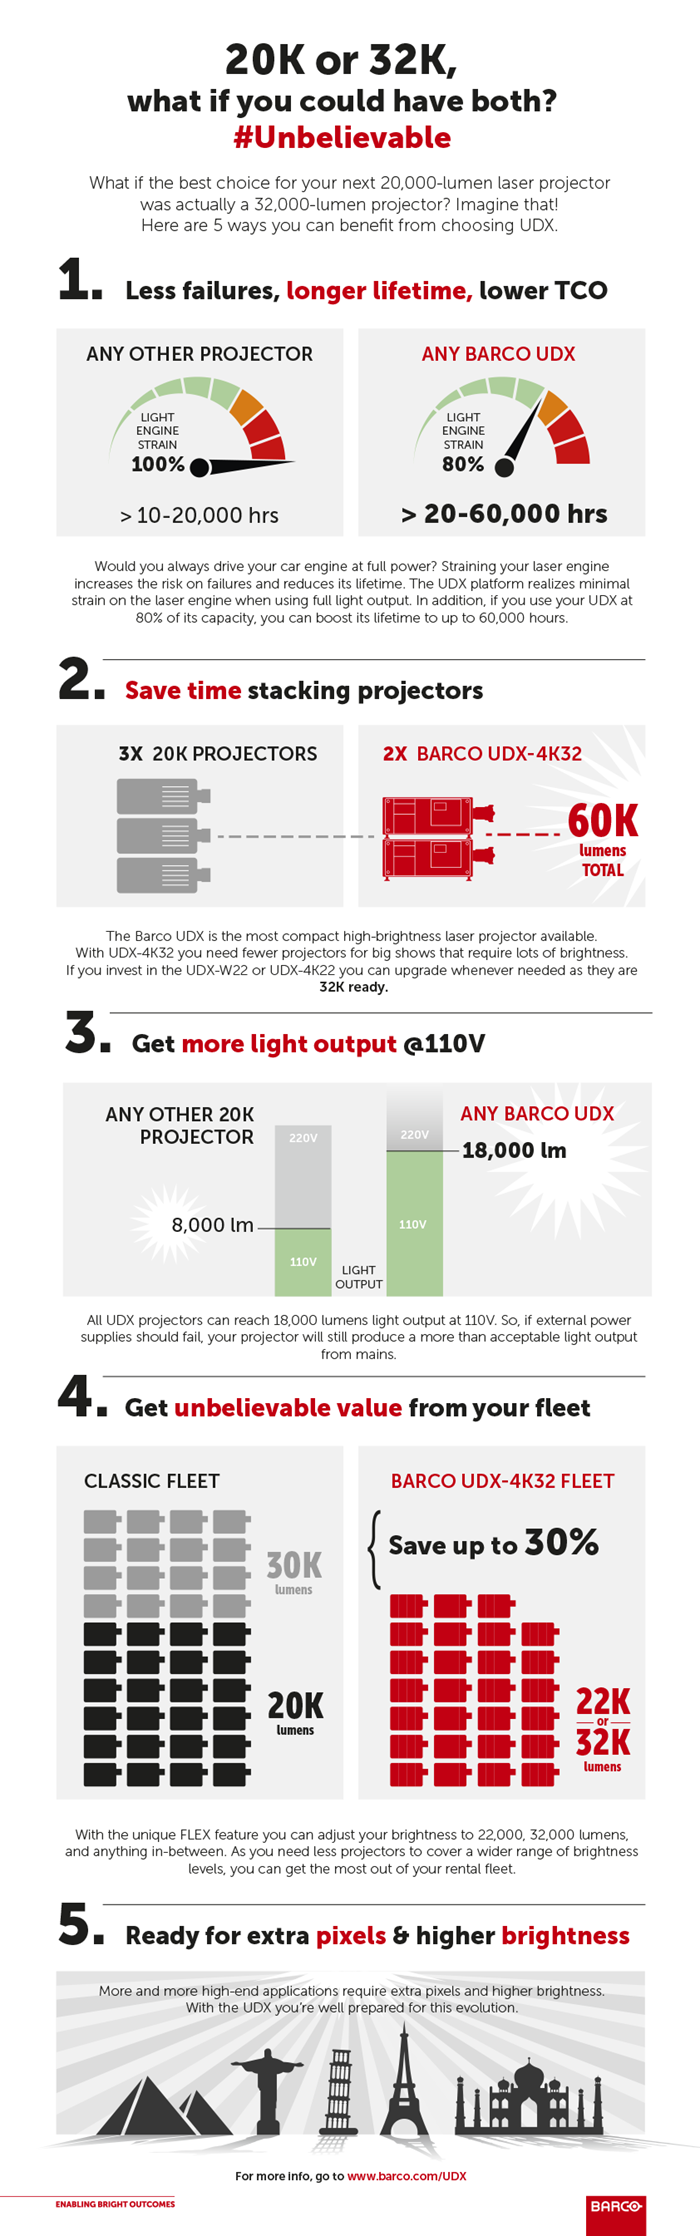 News | Infographic: what if the best choice for your next 20K lumens